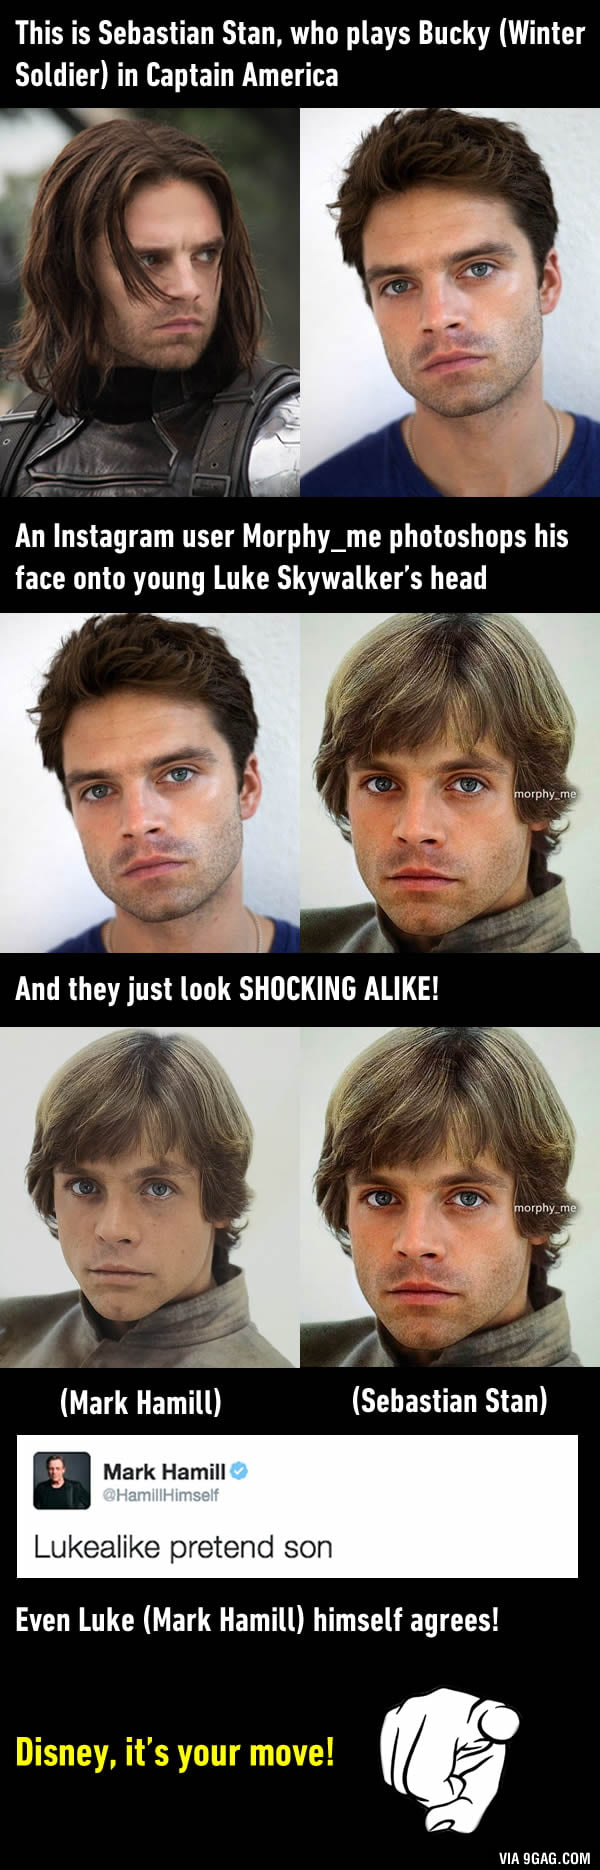 Sebastian Stan looks just like a young Luke Skywalker